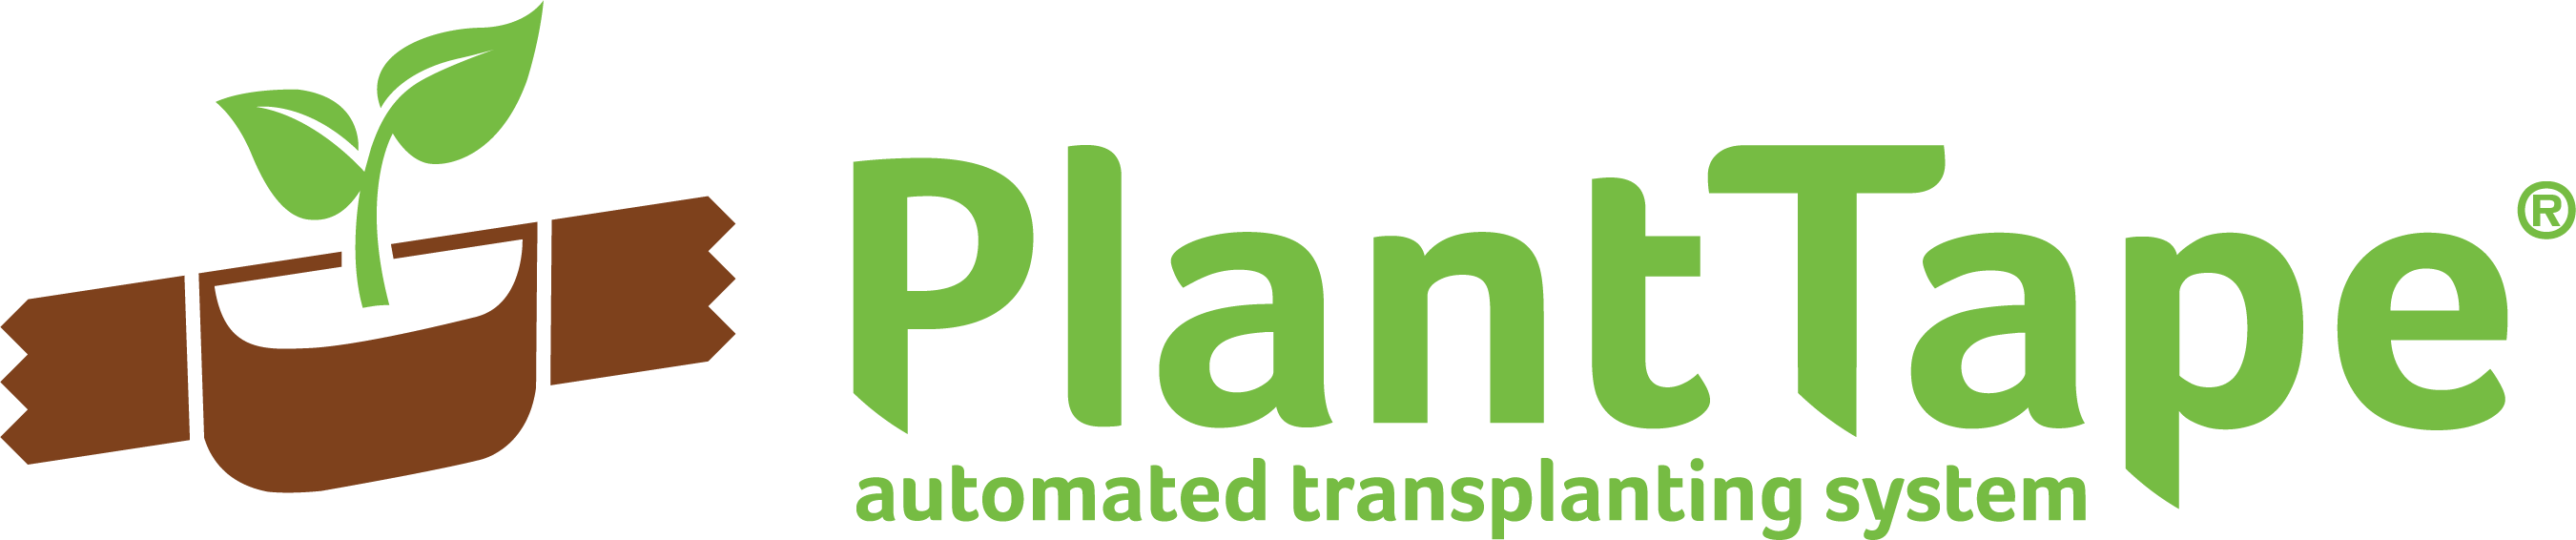 PlantTape Showcases Versatility in Planting Seedlings at Any Stage of Growth